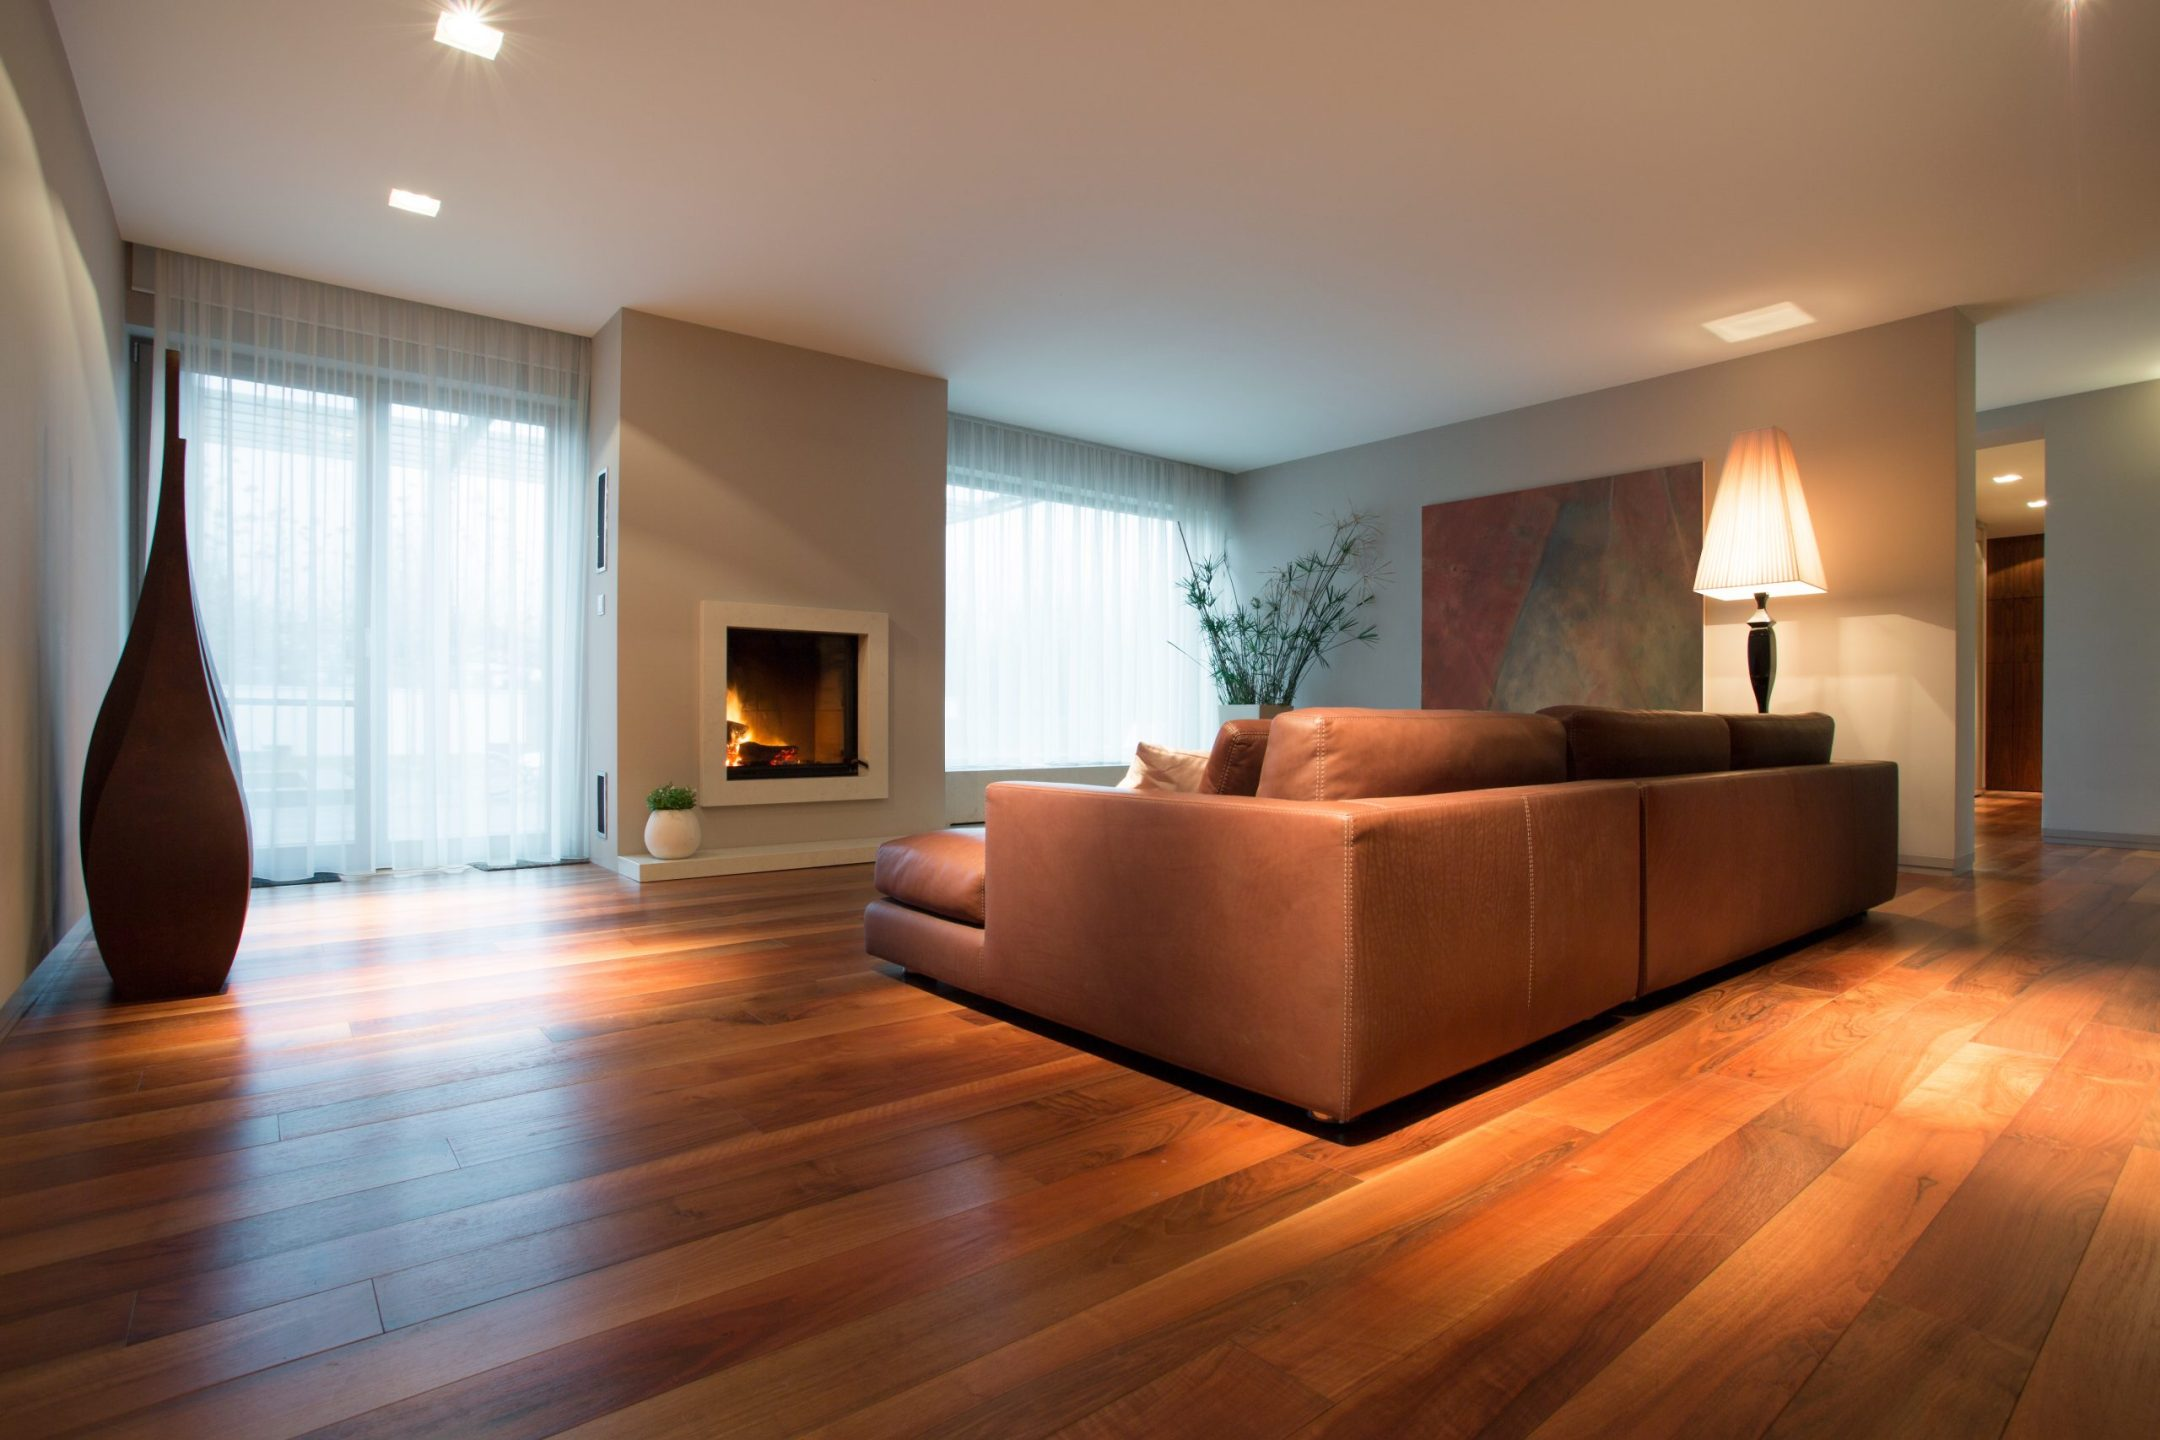 A living room with natural wood floor